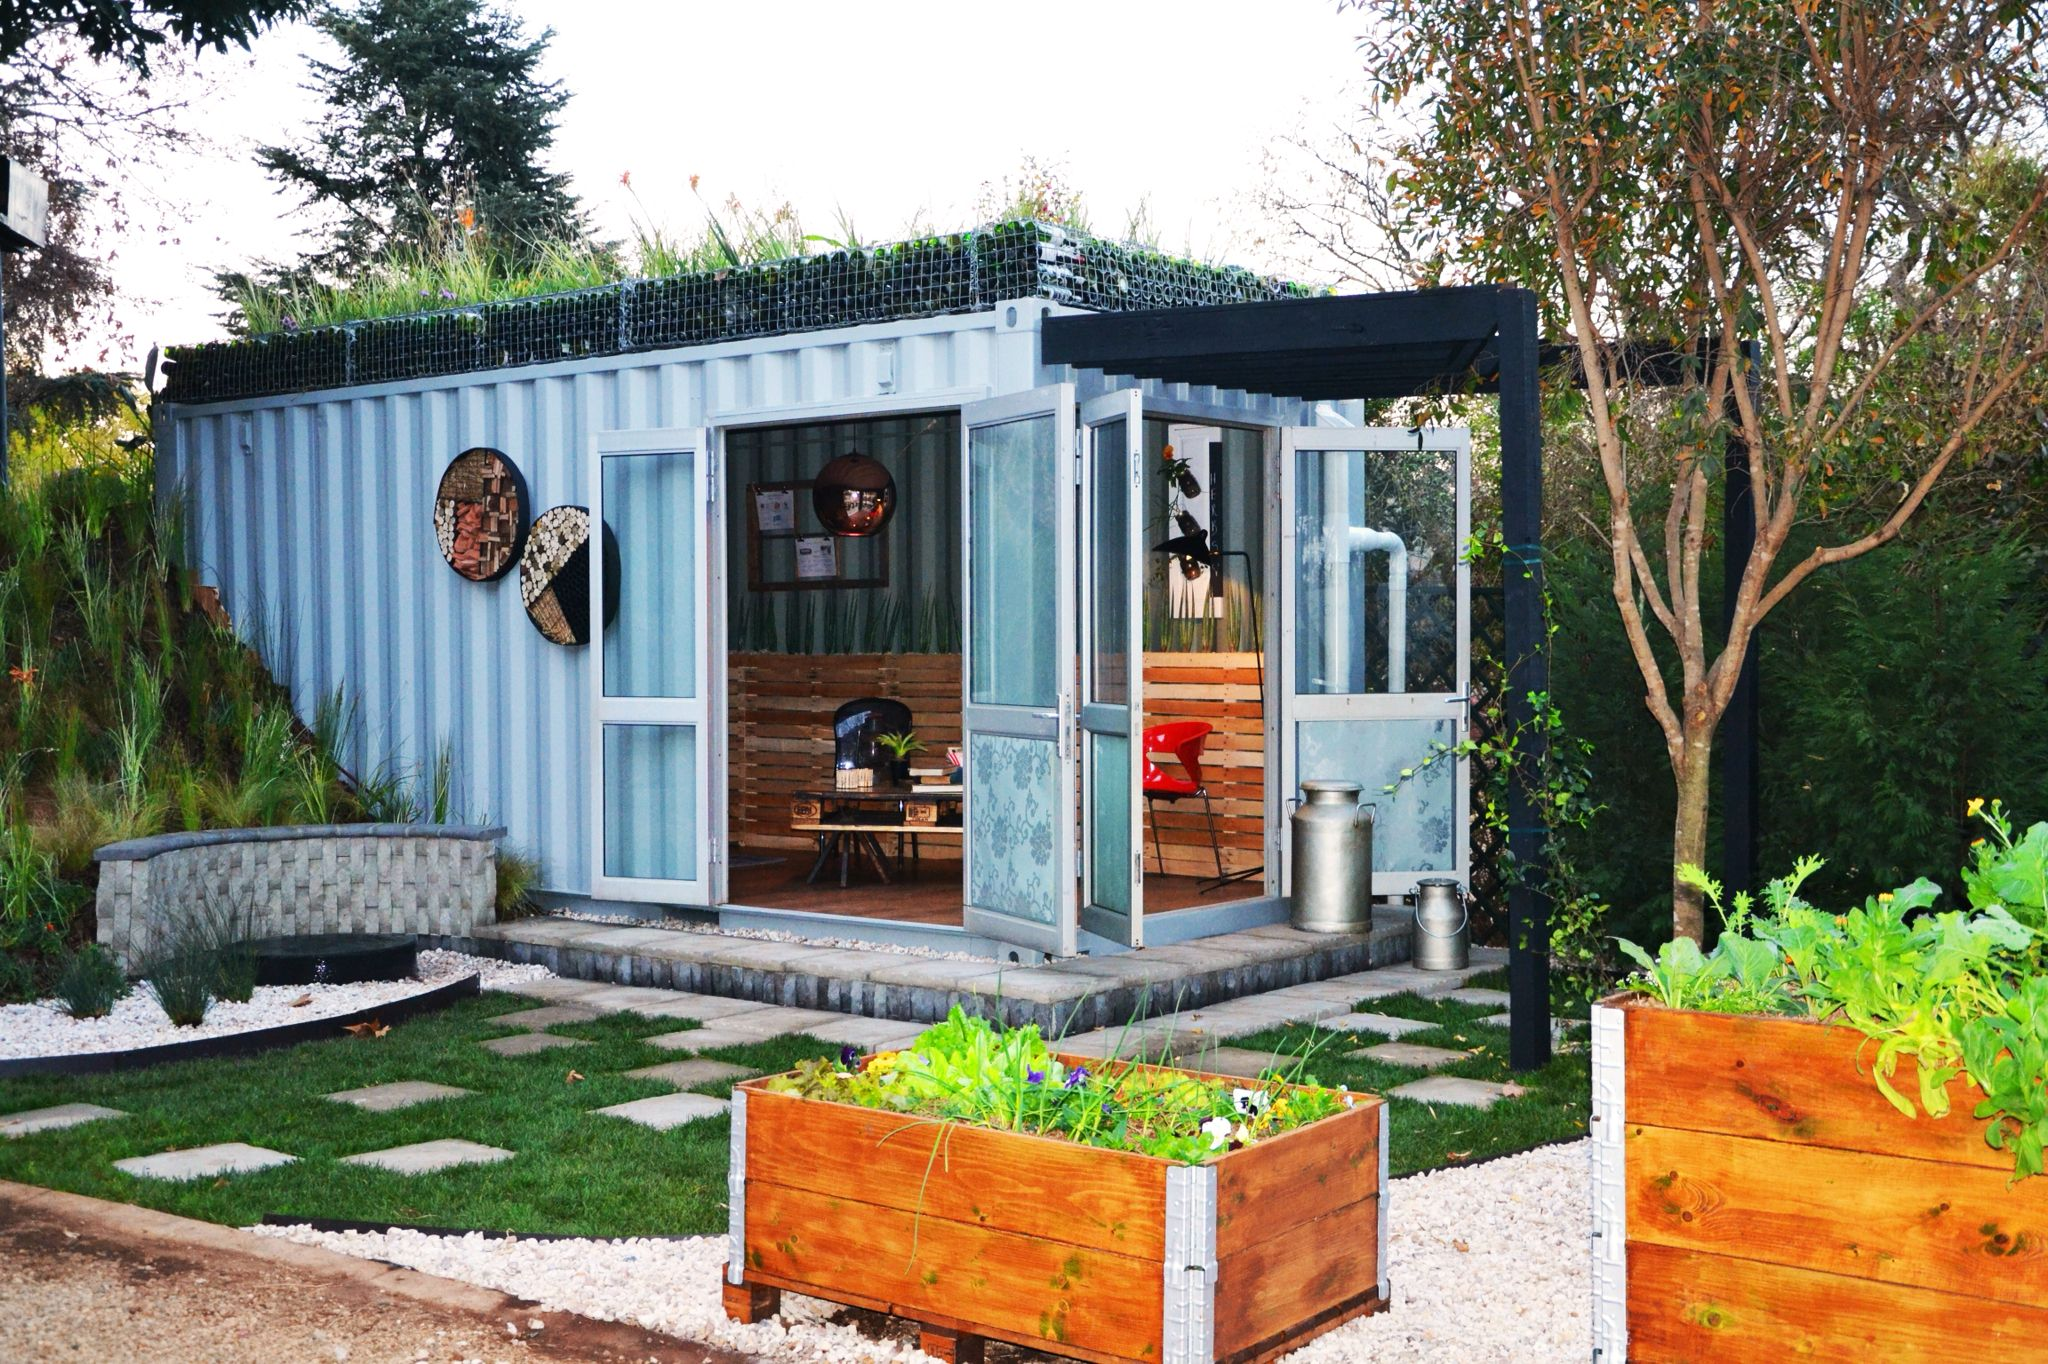 Living In A Shipping Container shipping container converted into an outdoor living space. roof